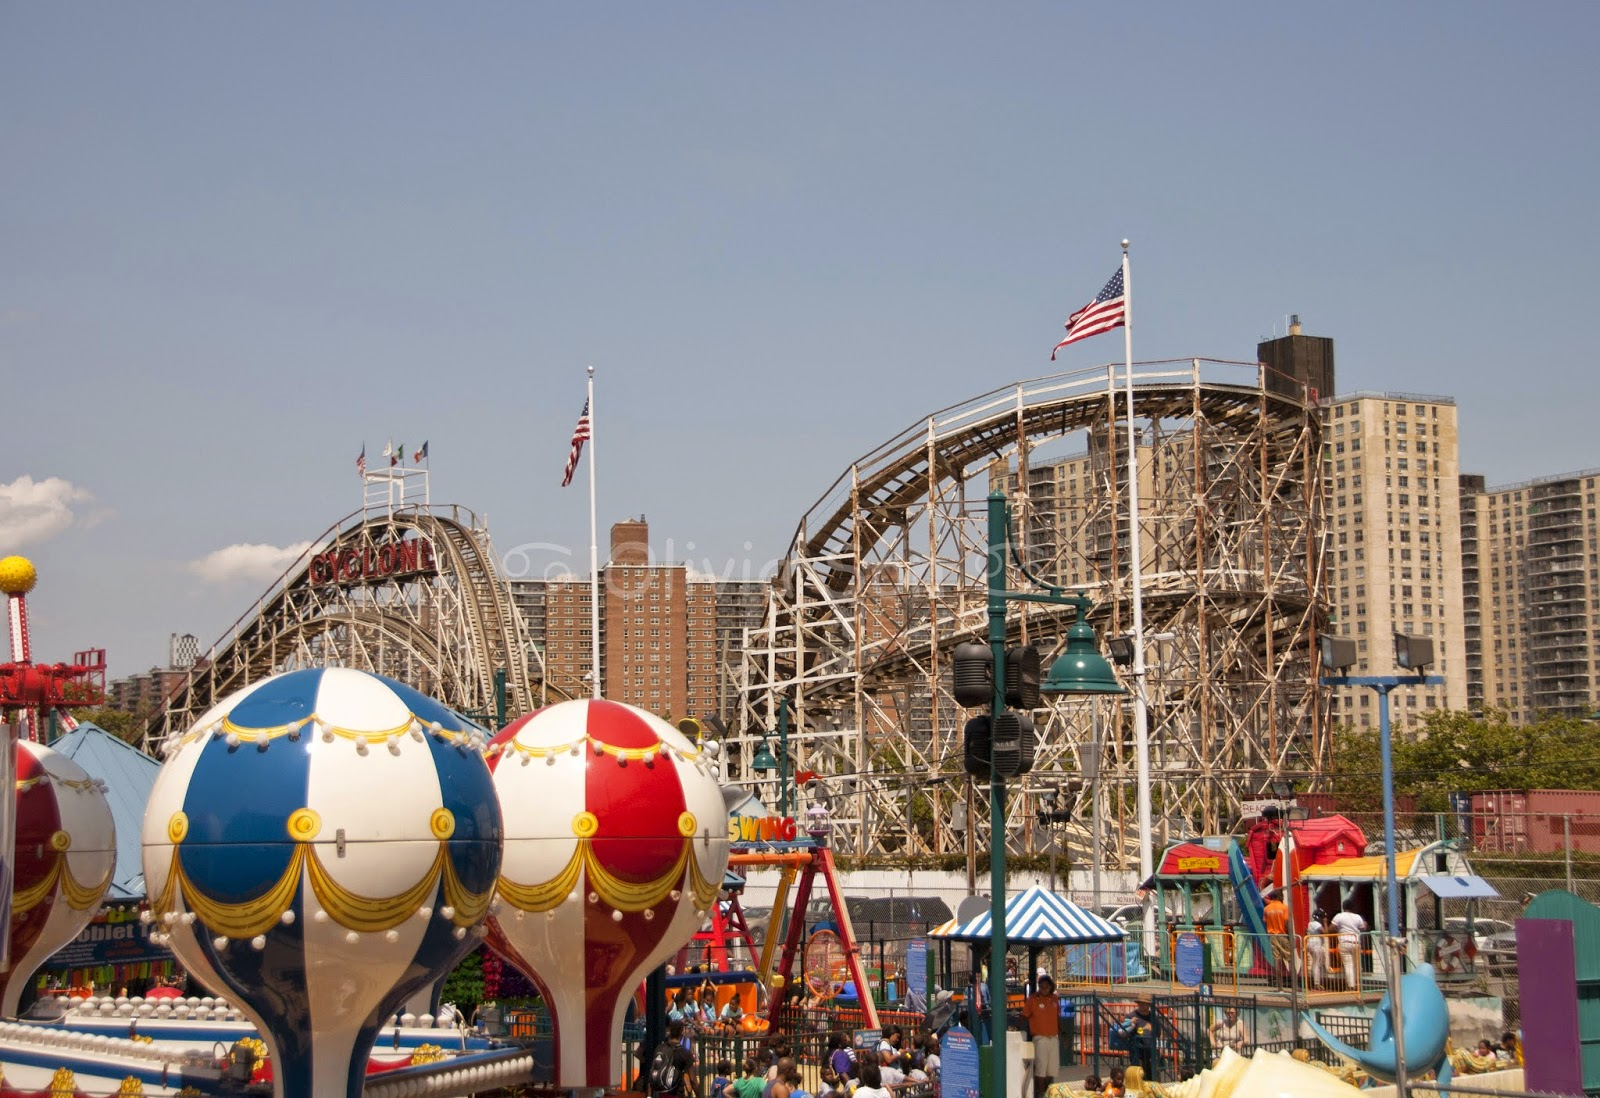 cyclone coney island, new york city, usa